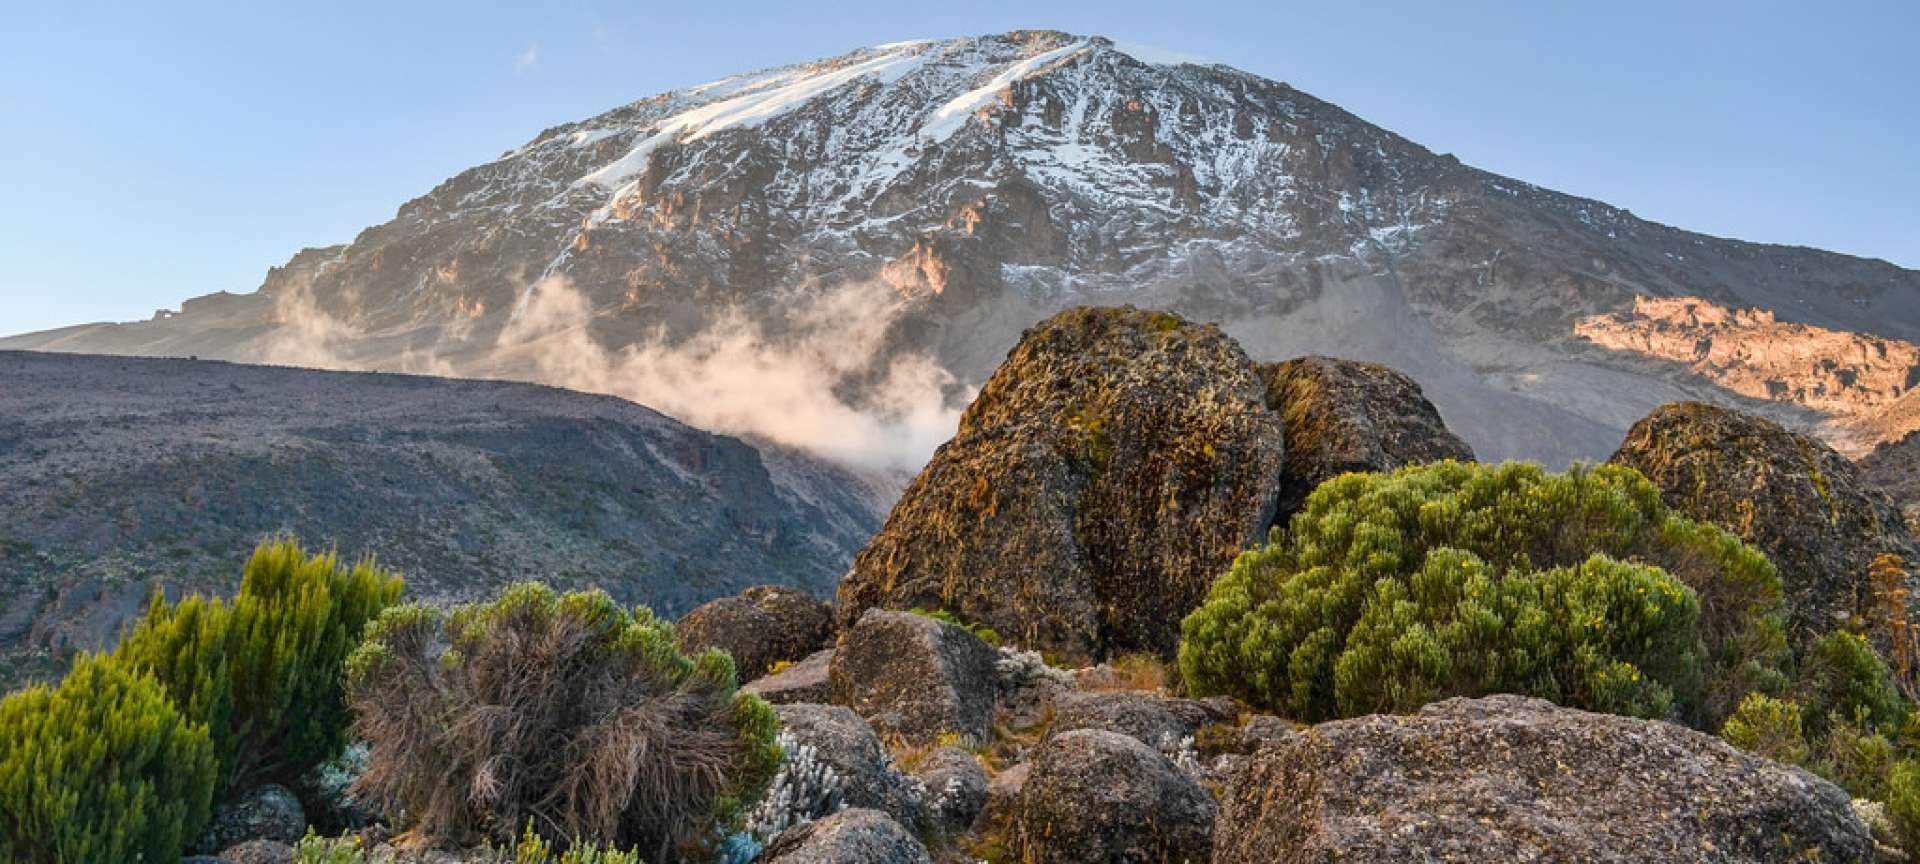 Uhuru peak is the highest part on Mount Kilimanjaro